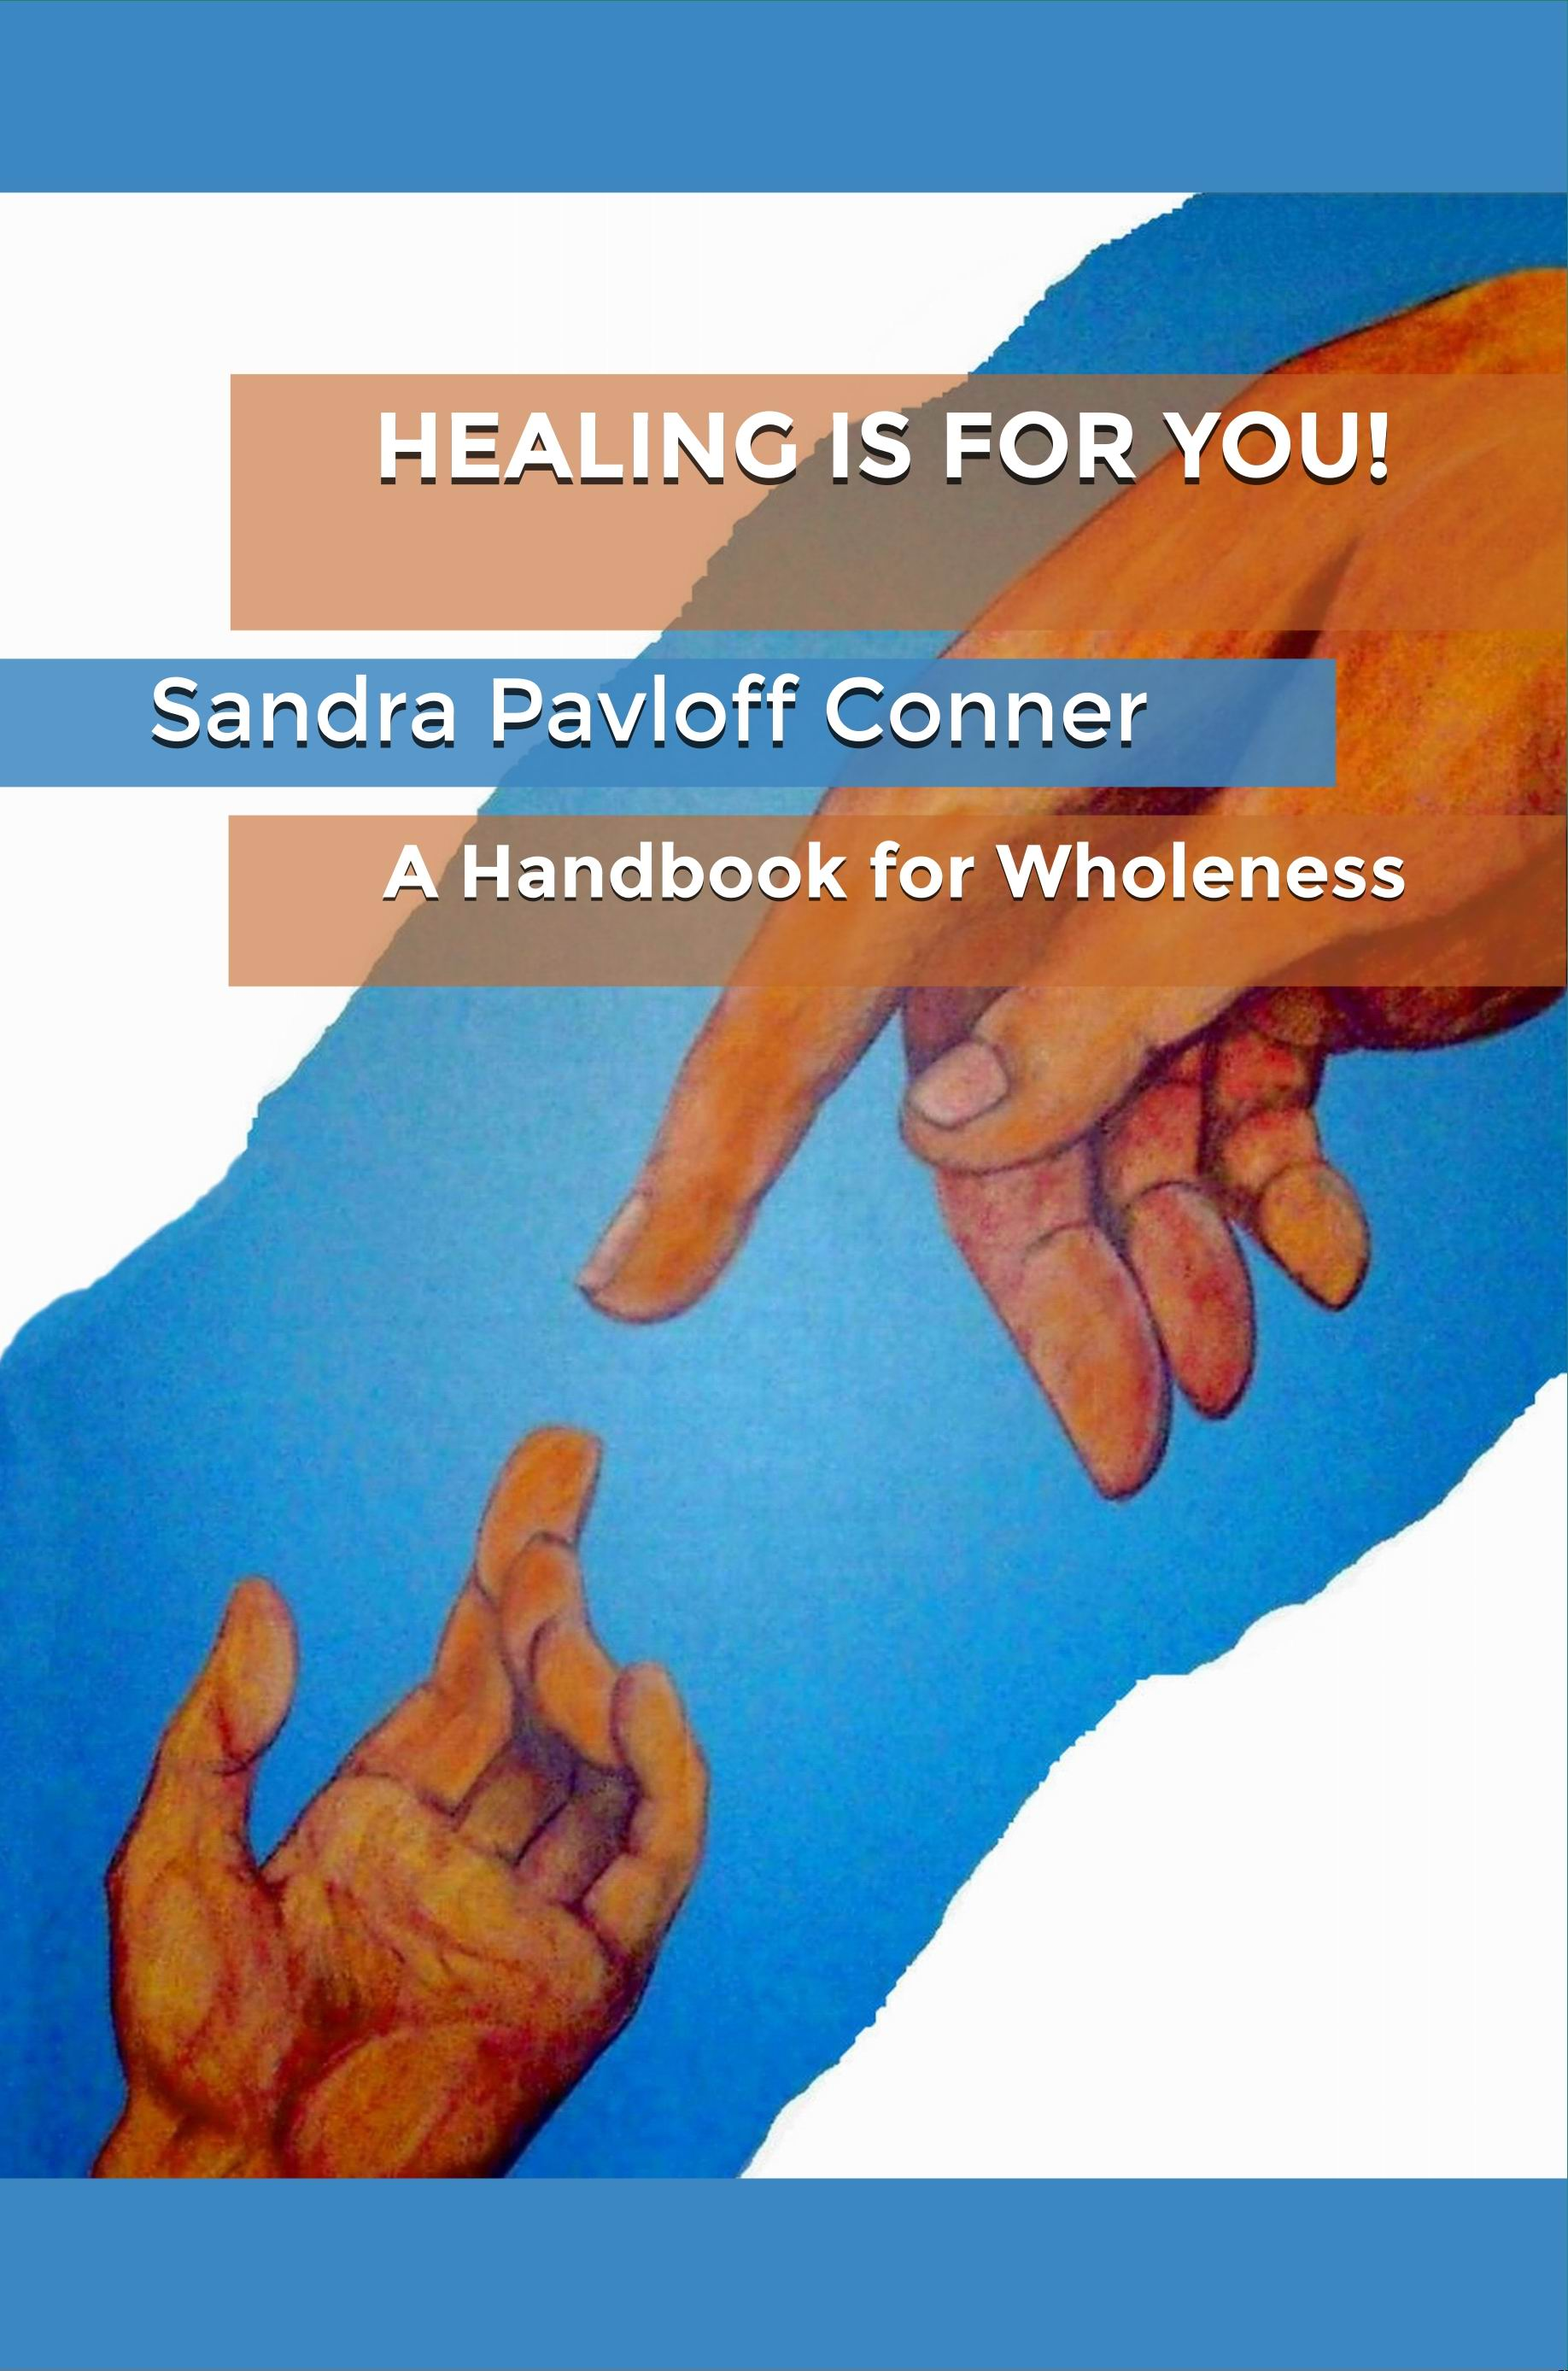 HEALING AMAZON COVER - front only